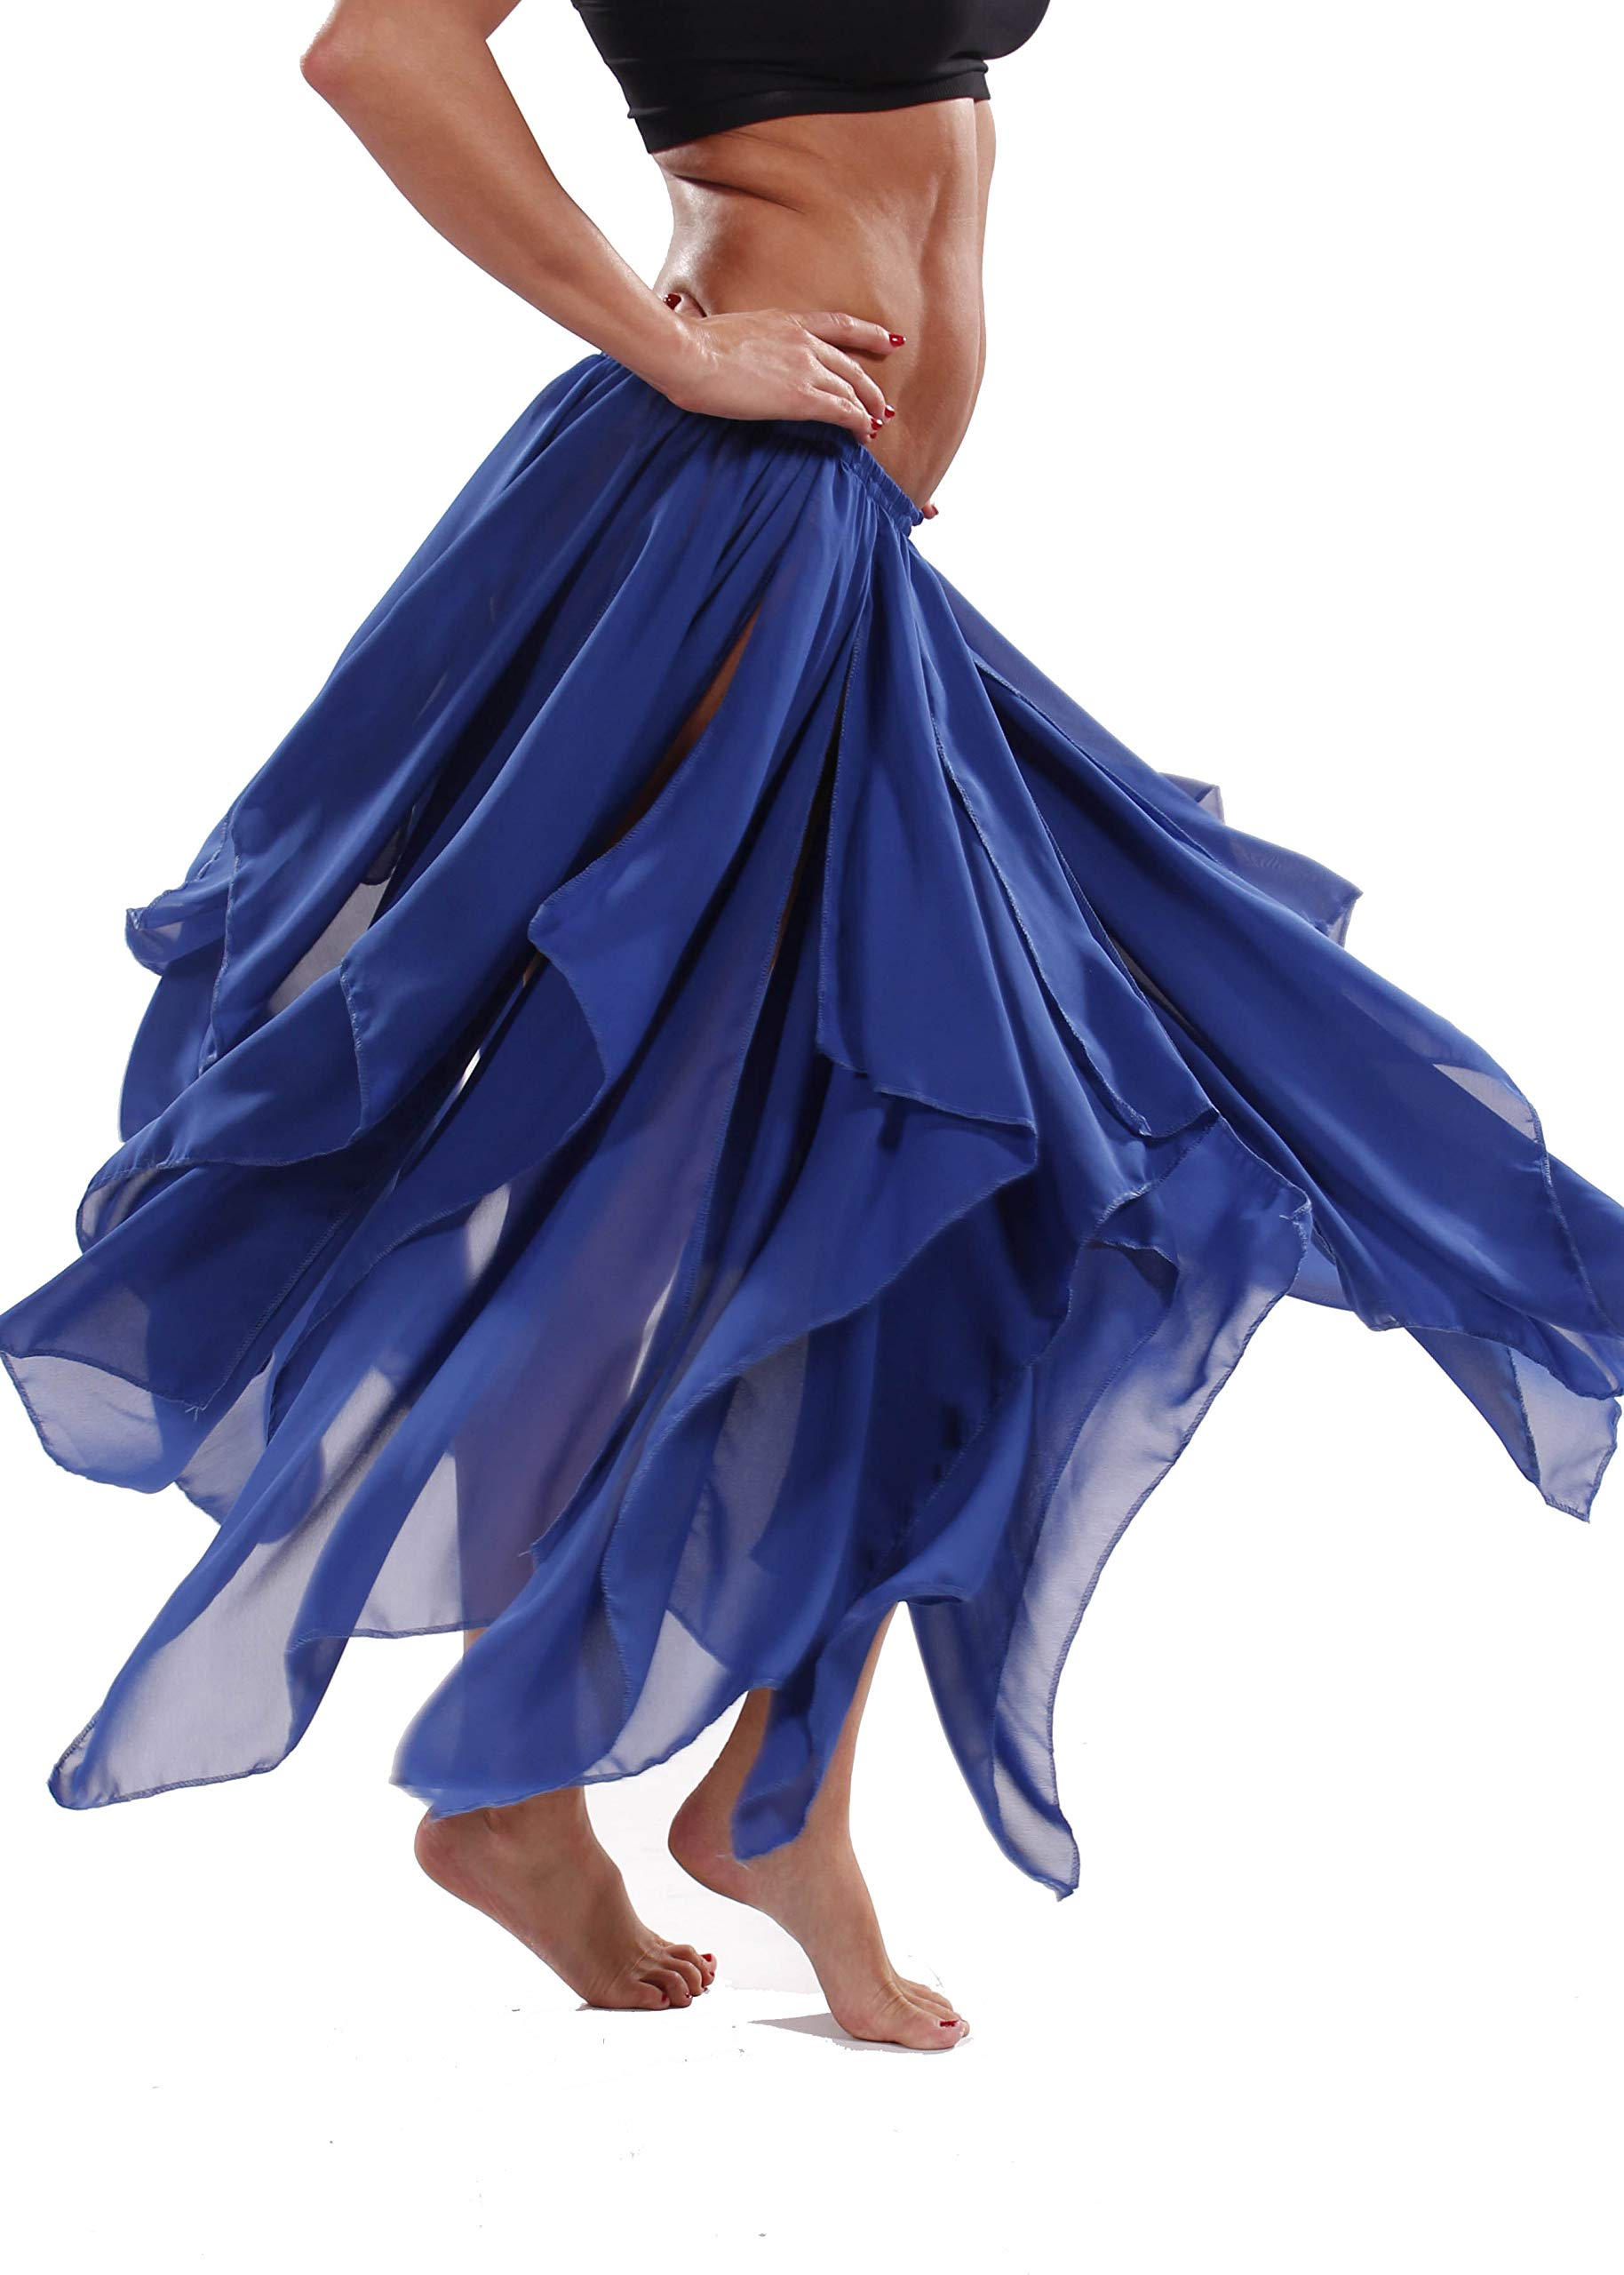 BELLY DANCE ACCESSORIES 13 PANEL CHIFFON SKIRT Royal One Size by Miss Belly Dance